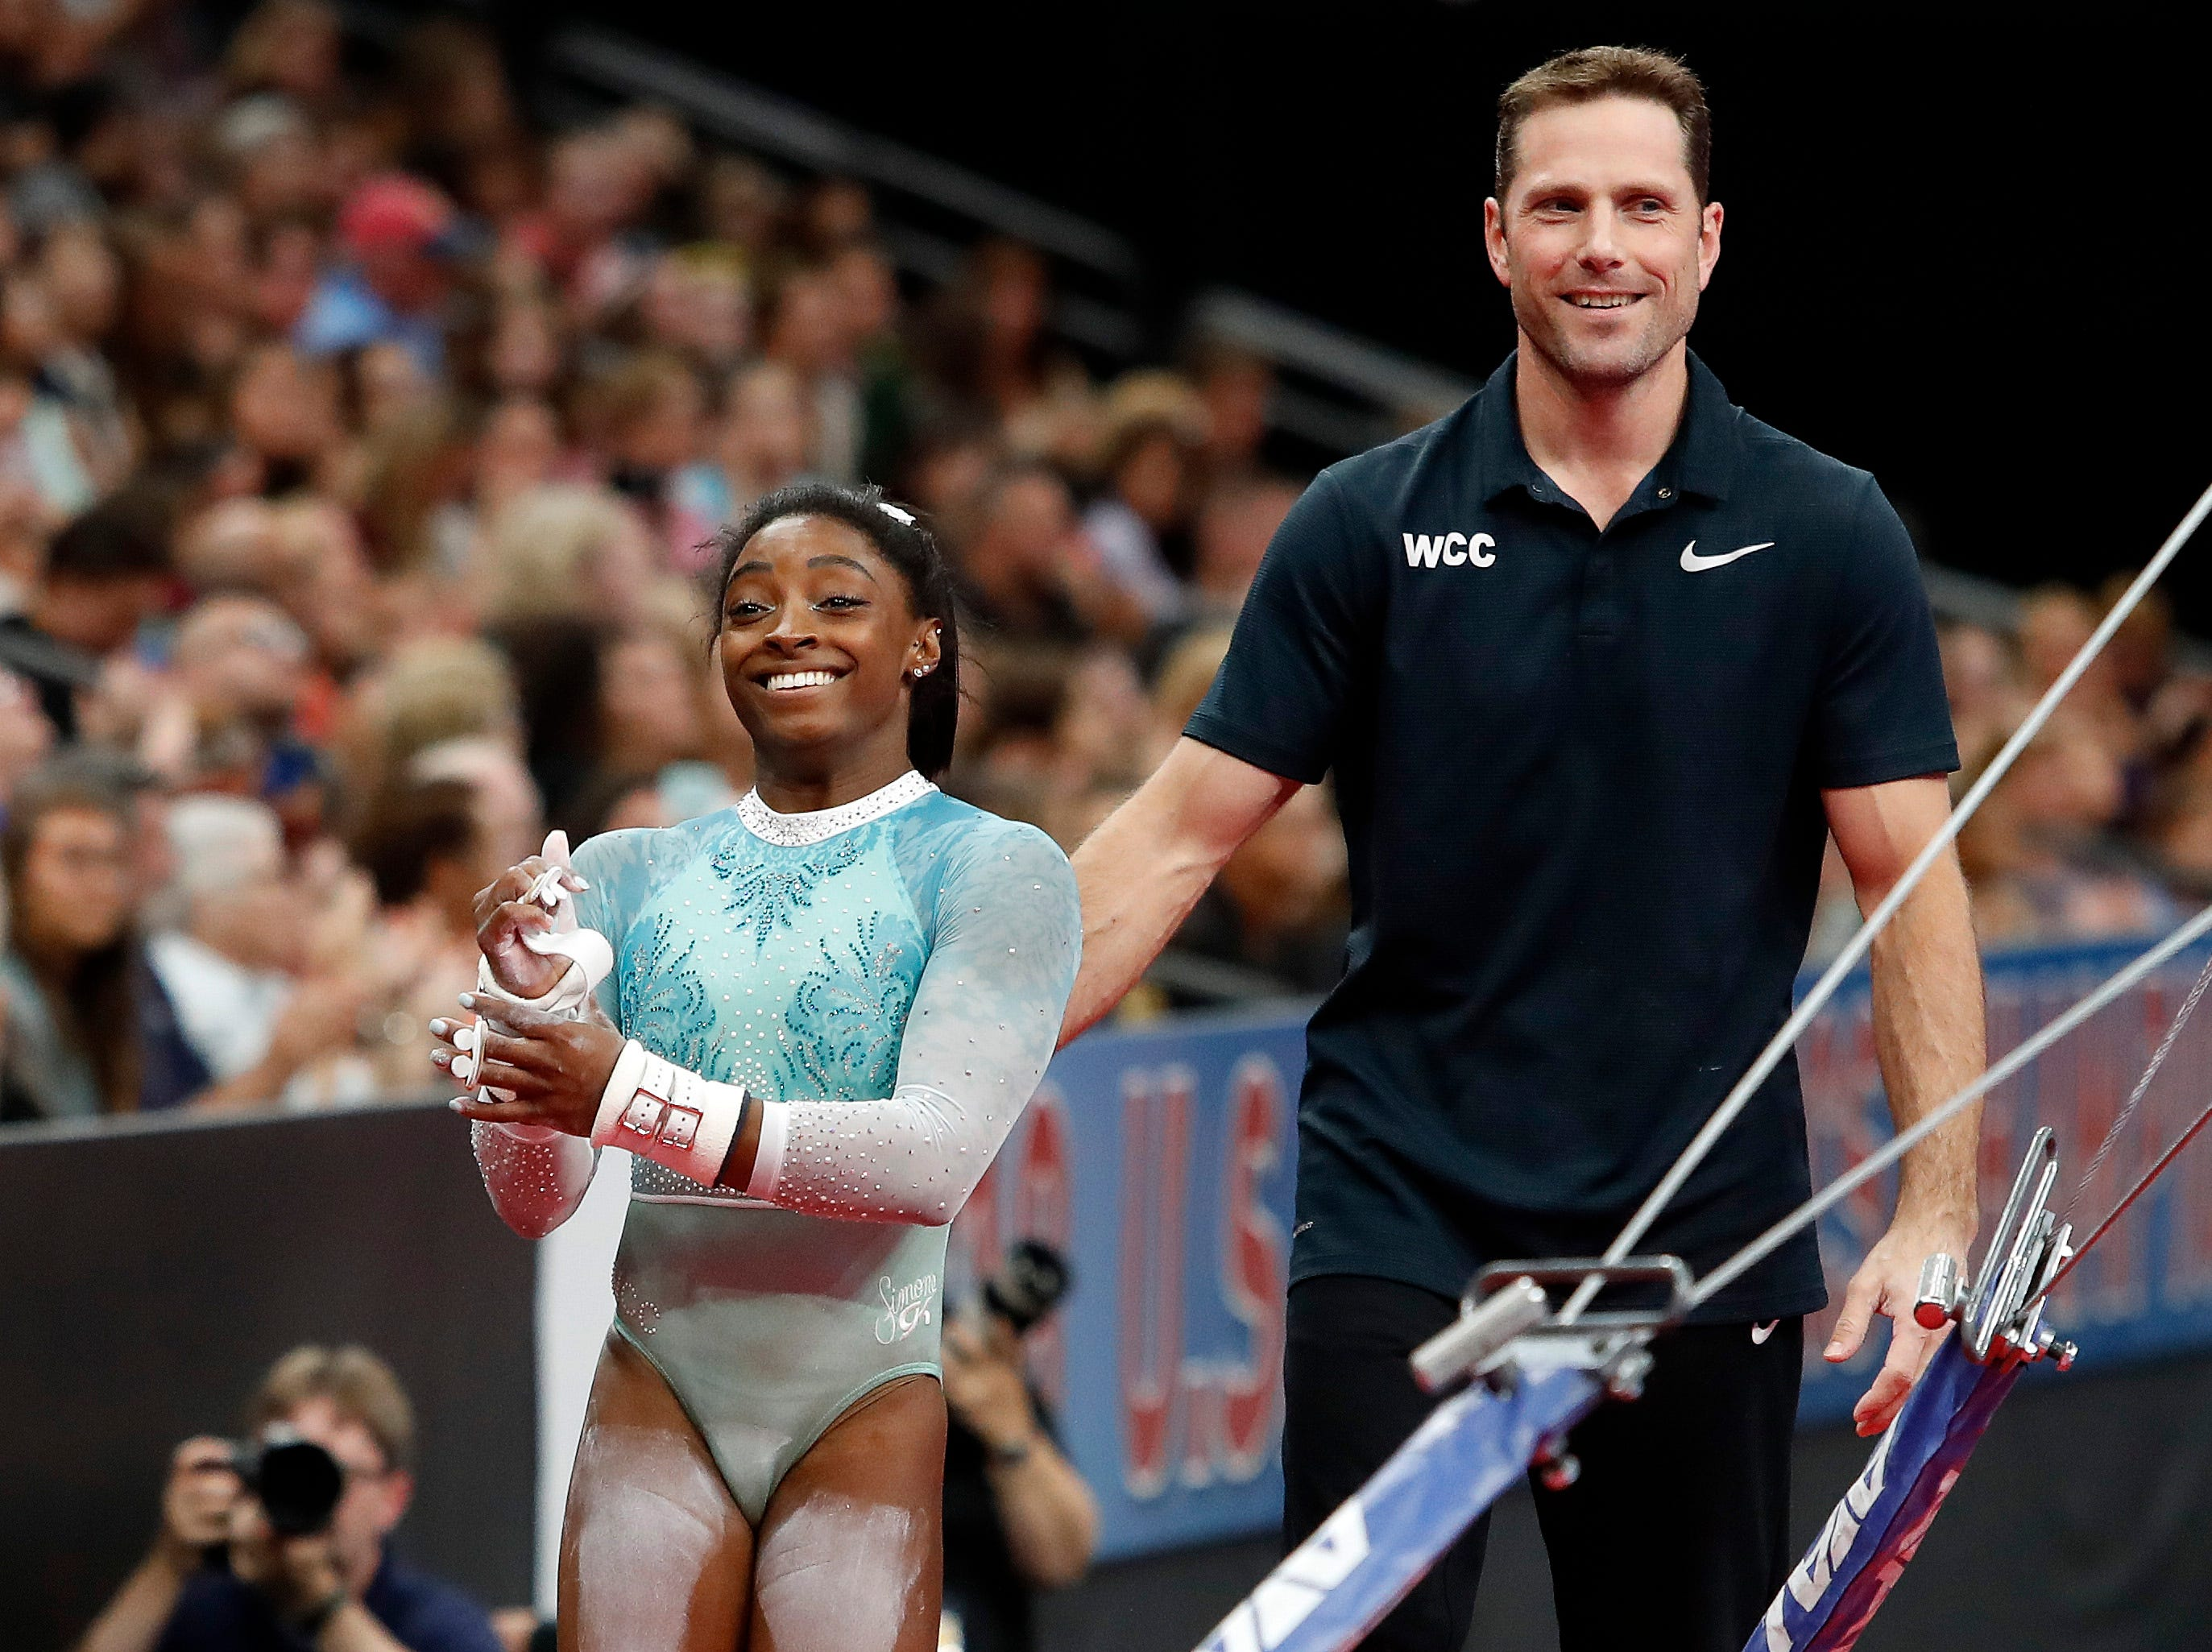 With coach Laurent Landi, Simone Biles smiles after competing on the uneven bars during the U.S. Gymnastics Championships at TD Garden on Aug. 19, 2018.